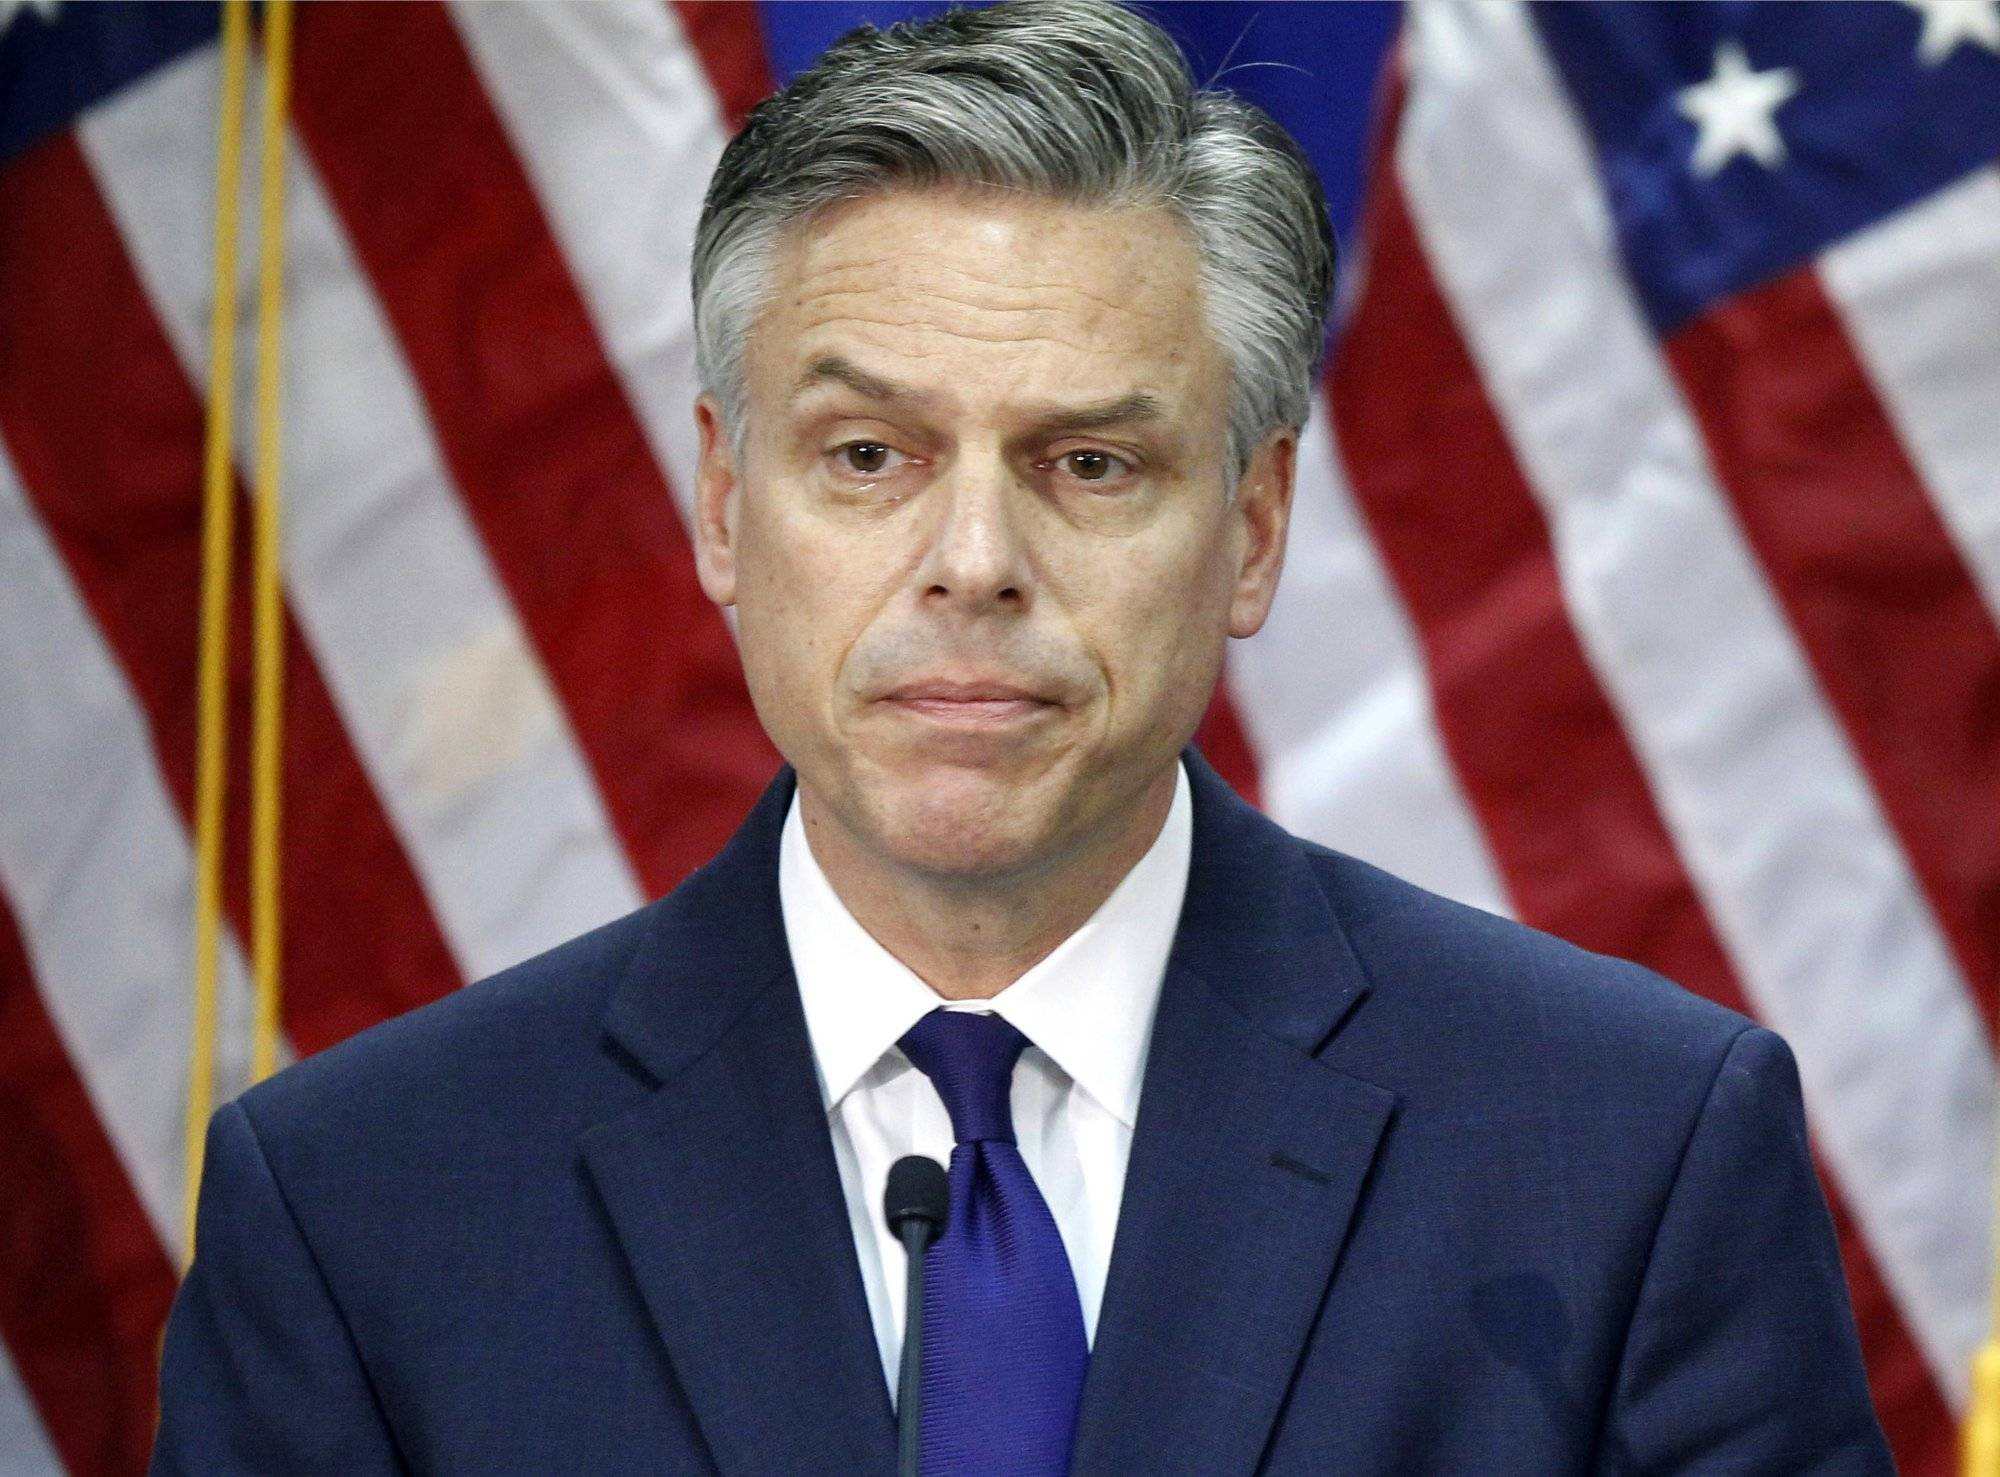 AP Source: Huntsman offered job of ambassador to Russia